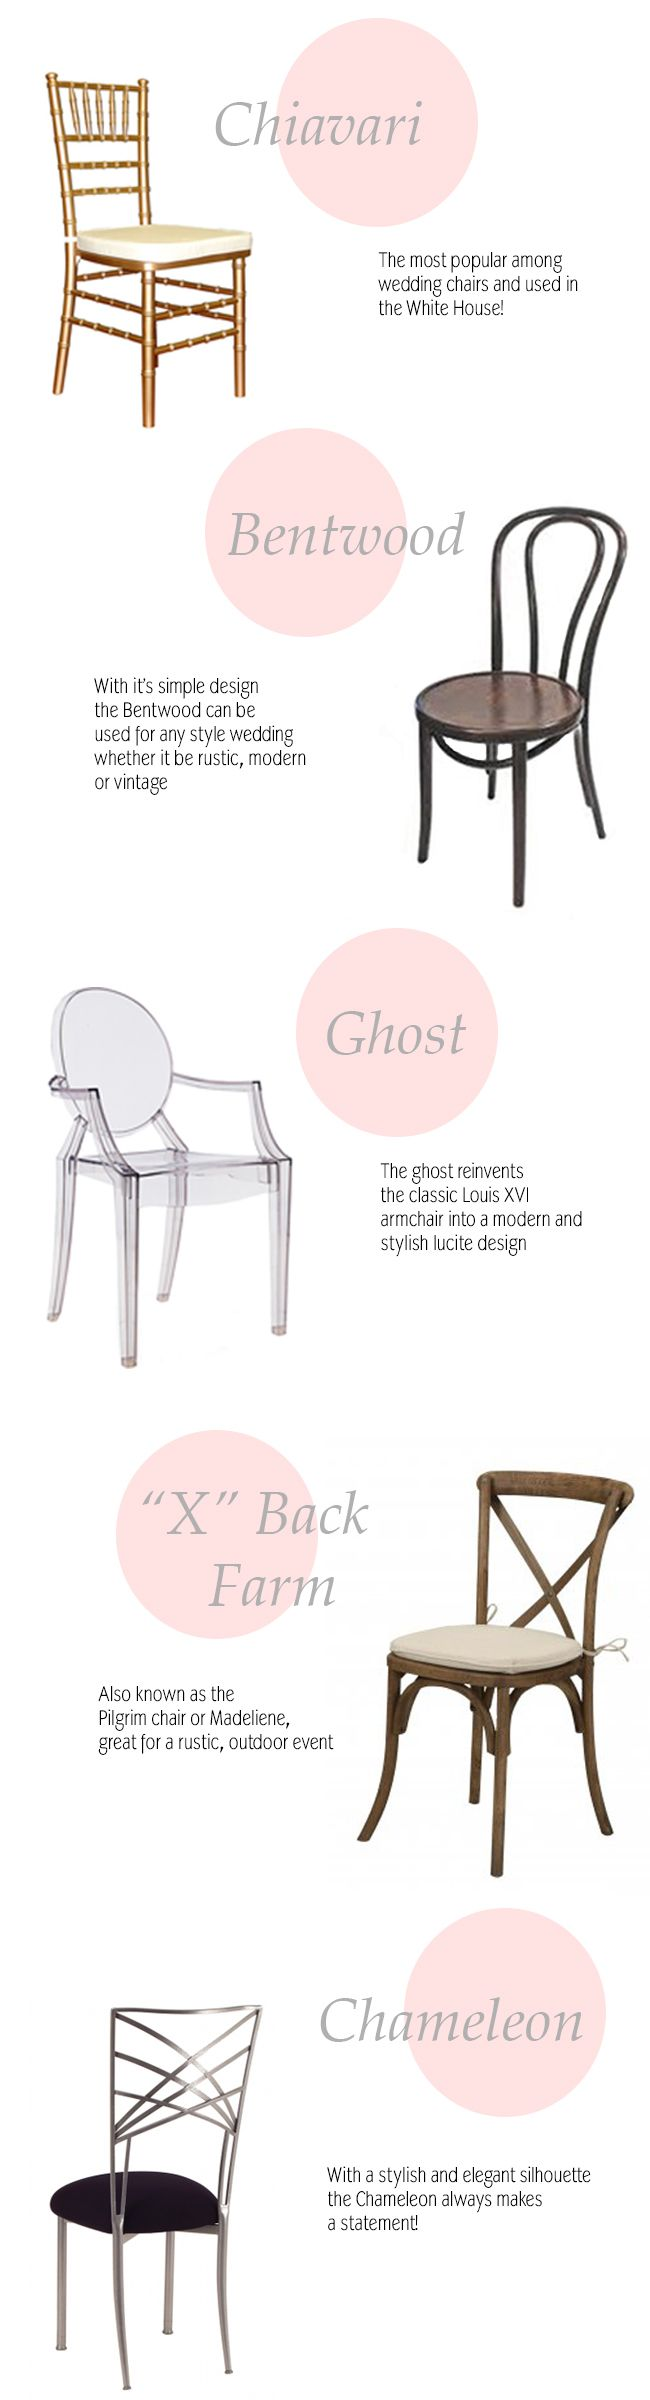 Top Five wedding chairs via Coastal Bride